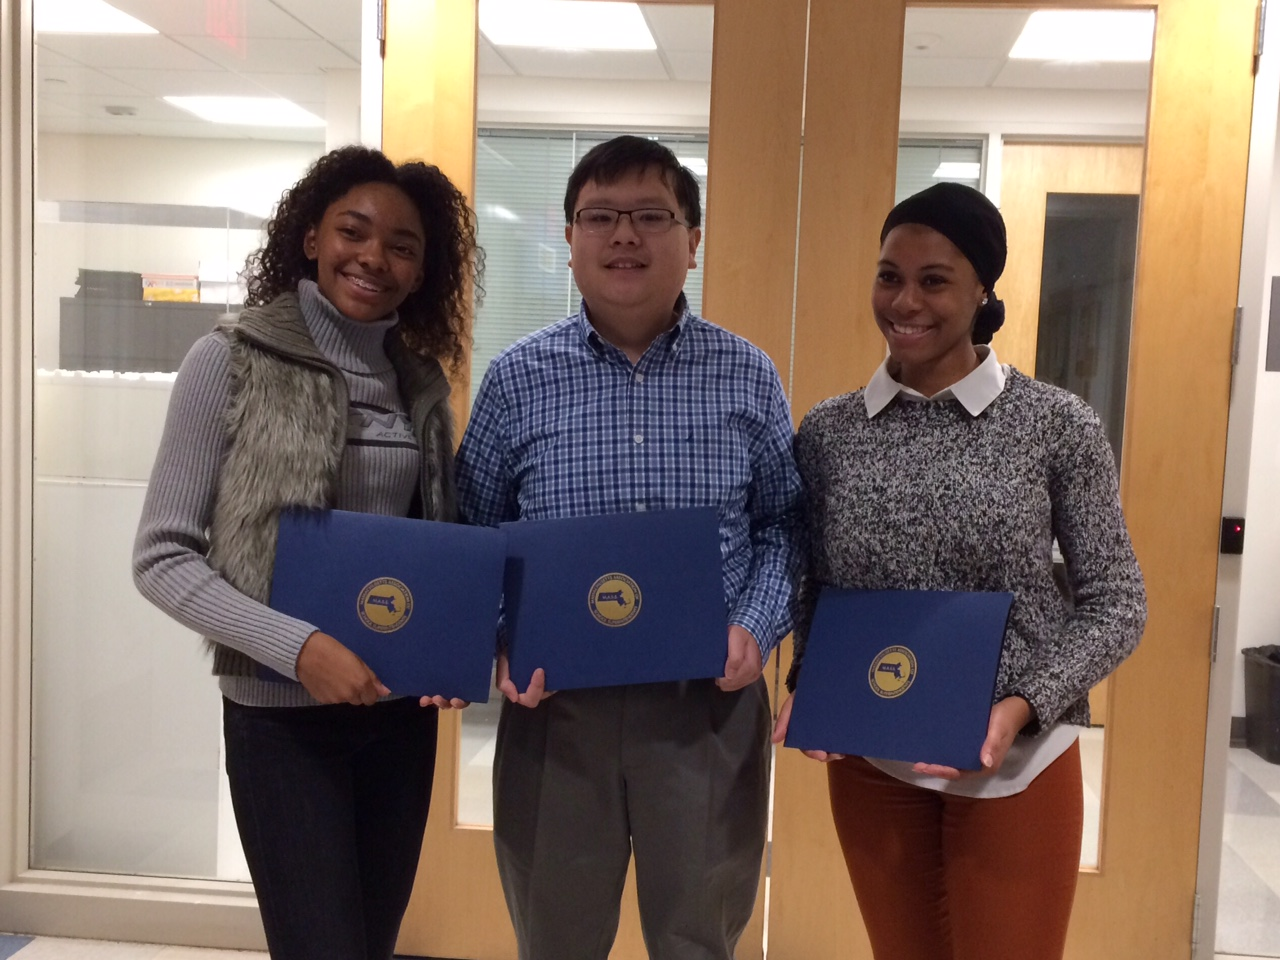 Seniors and MASS award recipients Carolyn Parker-Fairbain, Evan Yu and Tiara Ranson pose together with their awards.